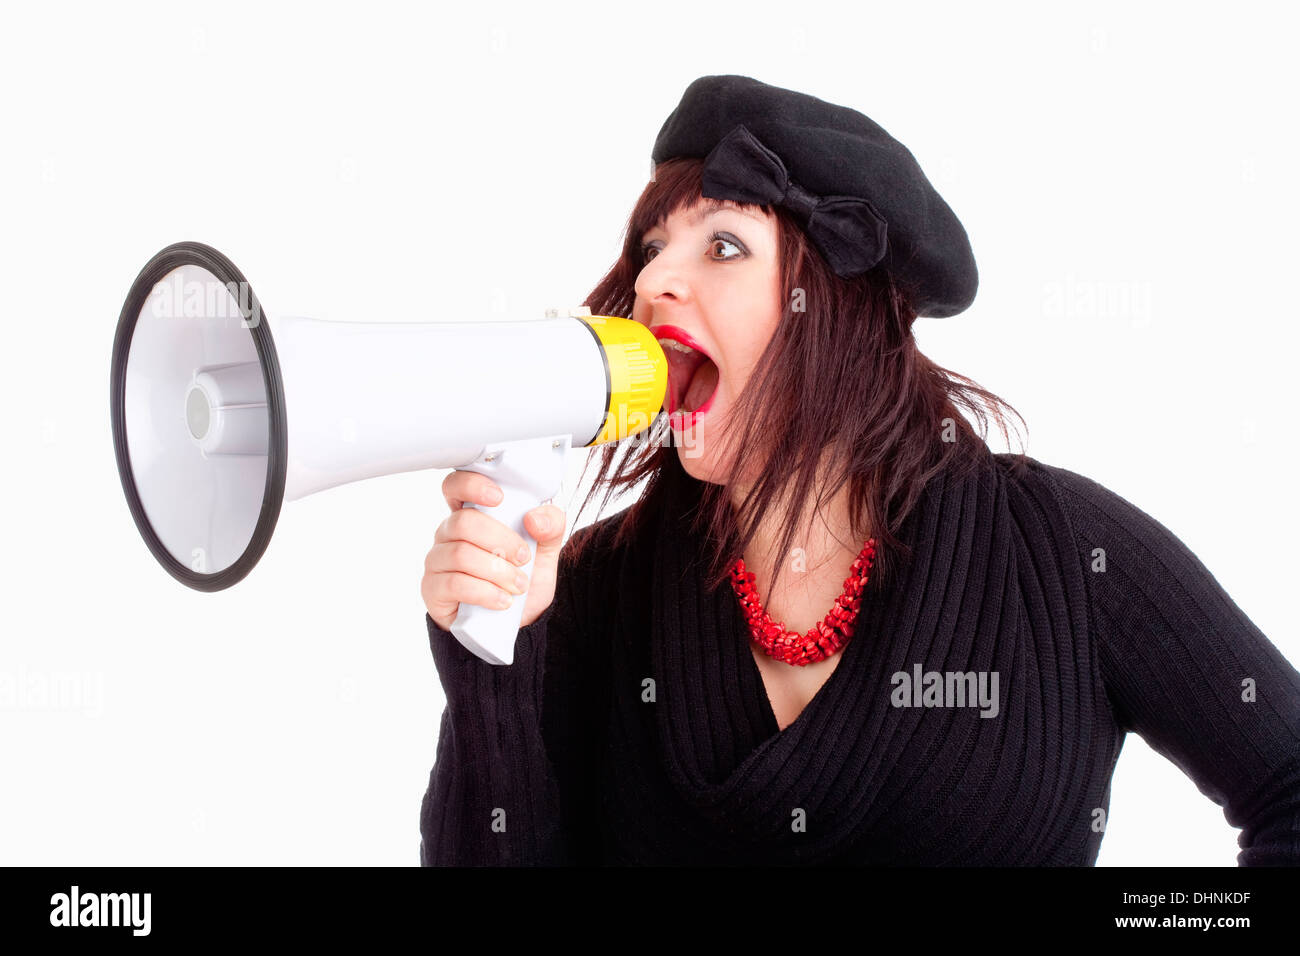 Young Woman with Hat Yelling in Megaphone - Isolated on White Stock Photo